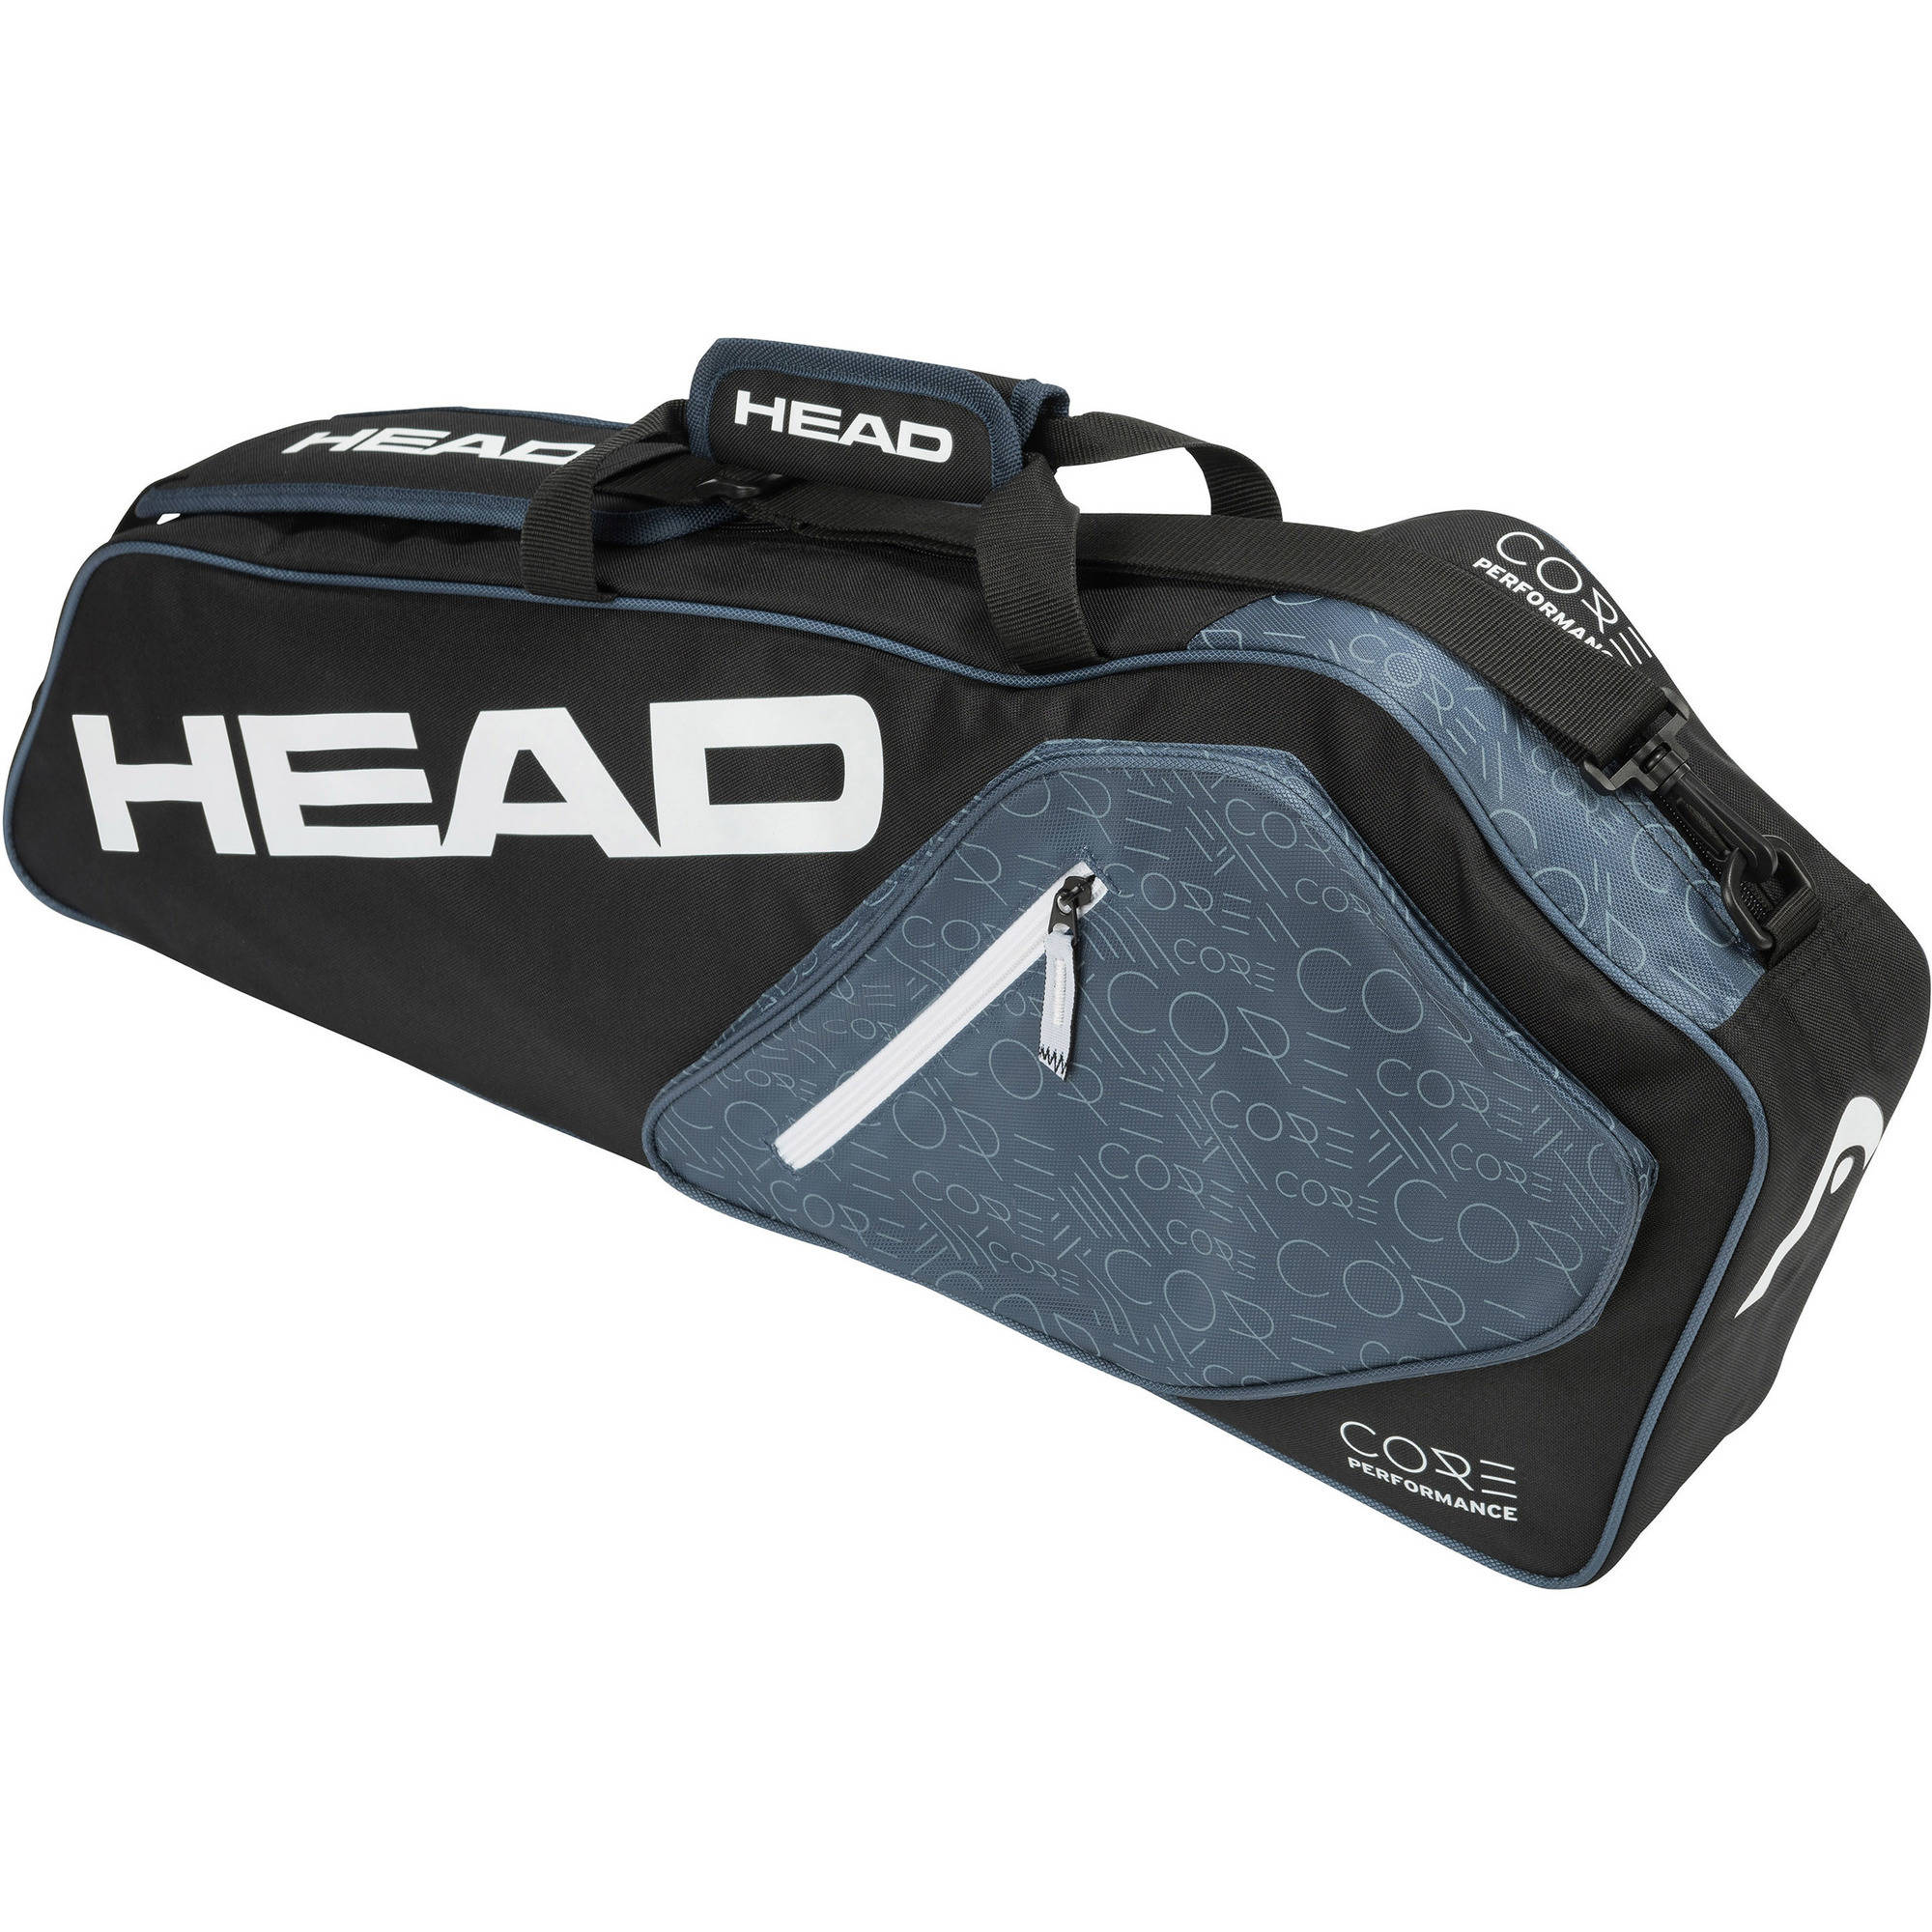 HEAD Core 3R Pro Tennis Bag by Head